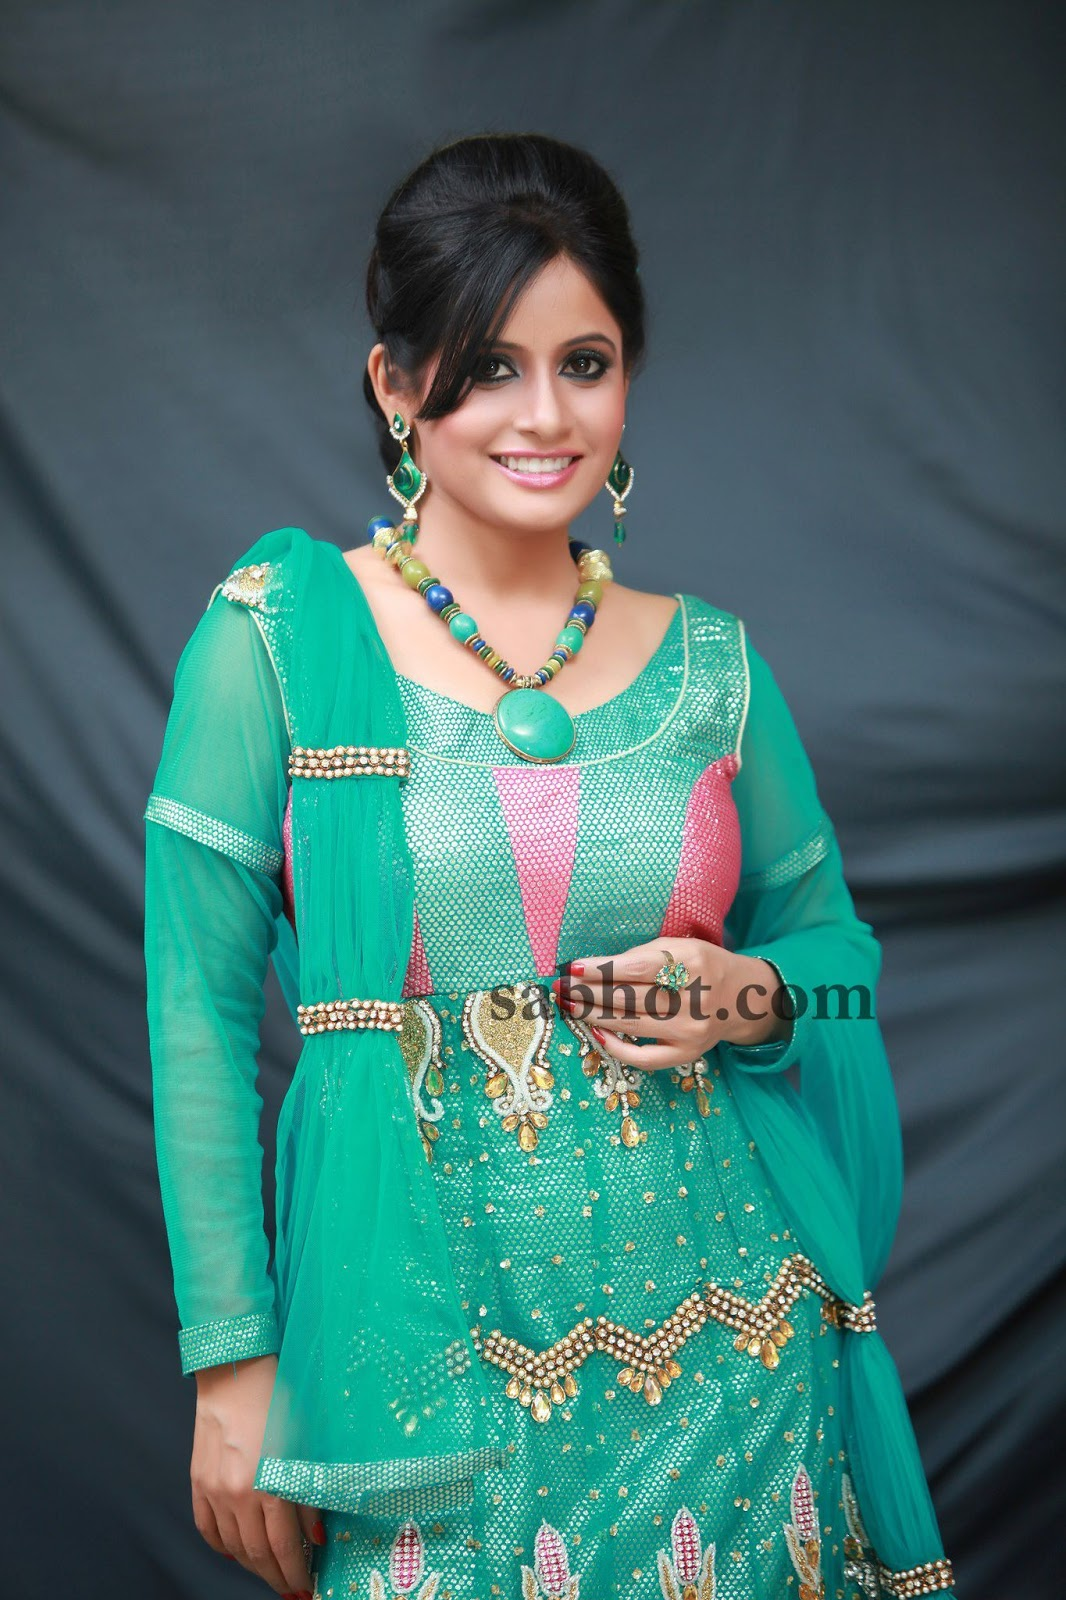 miss pooja sexy image